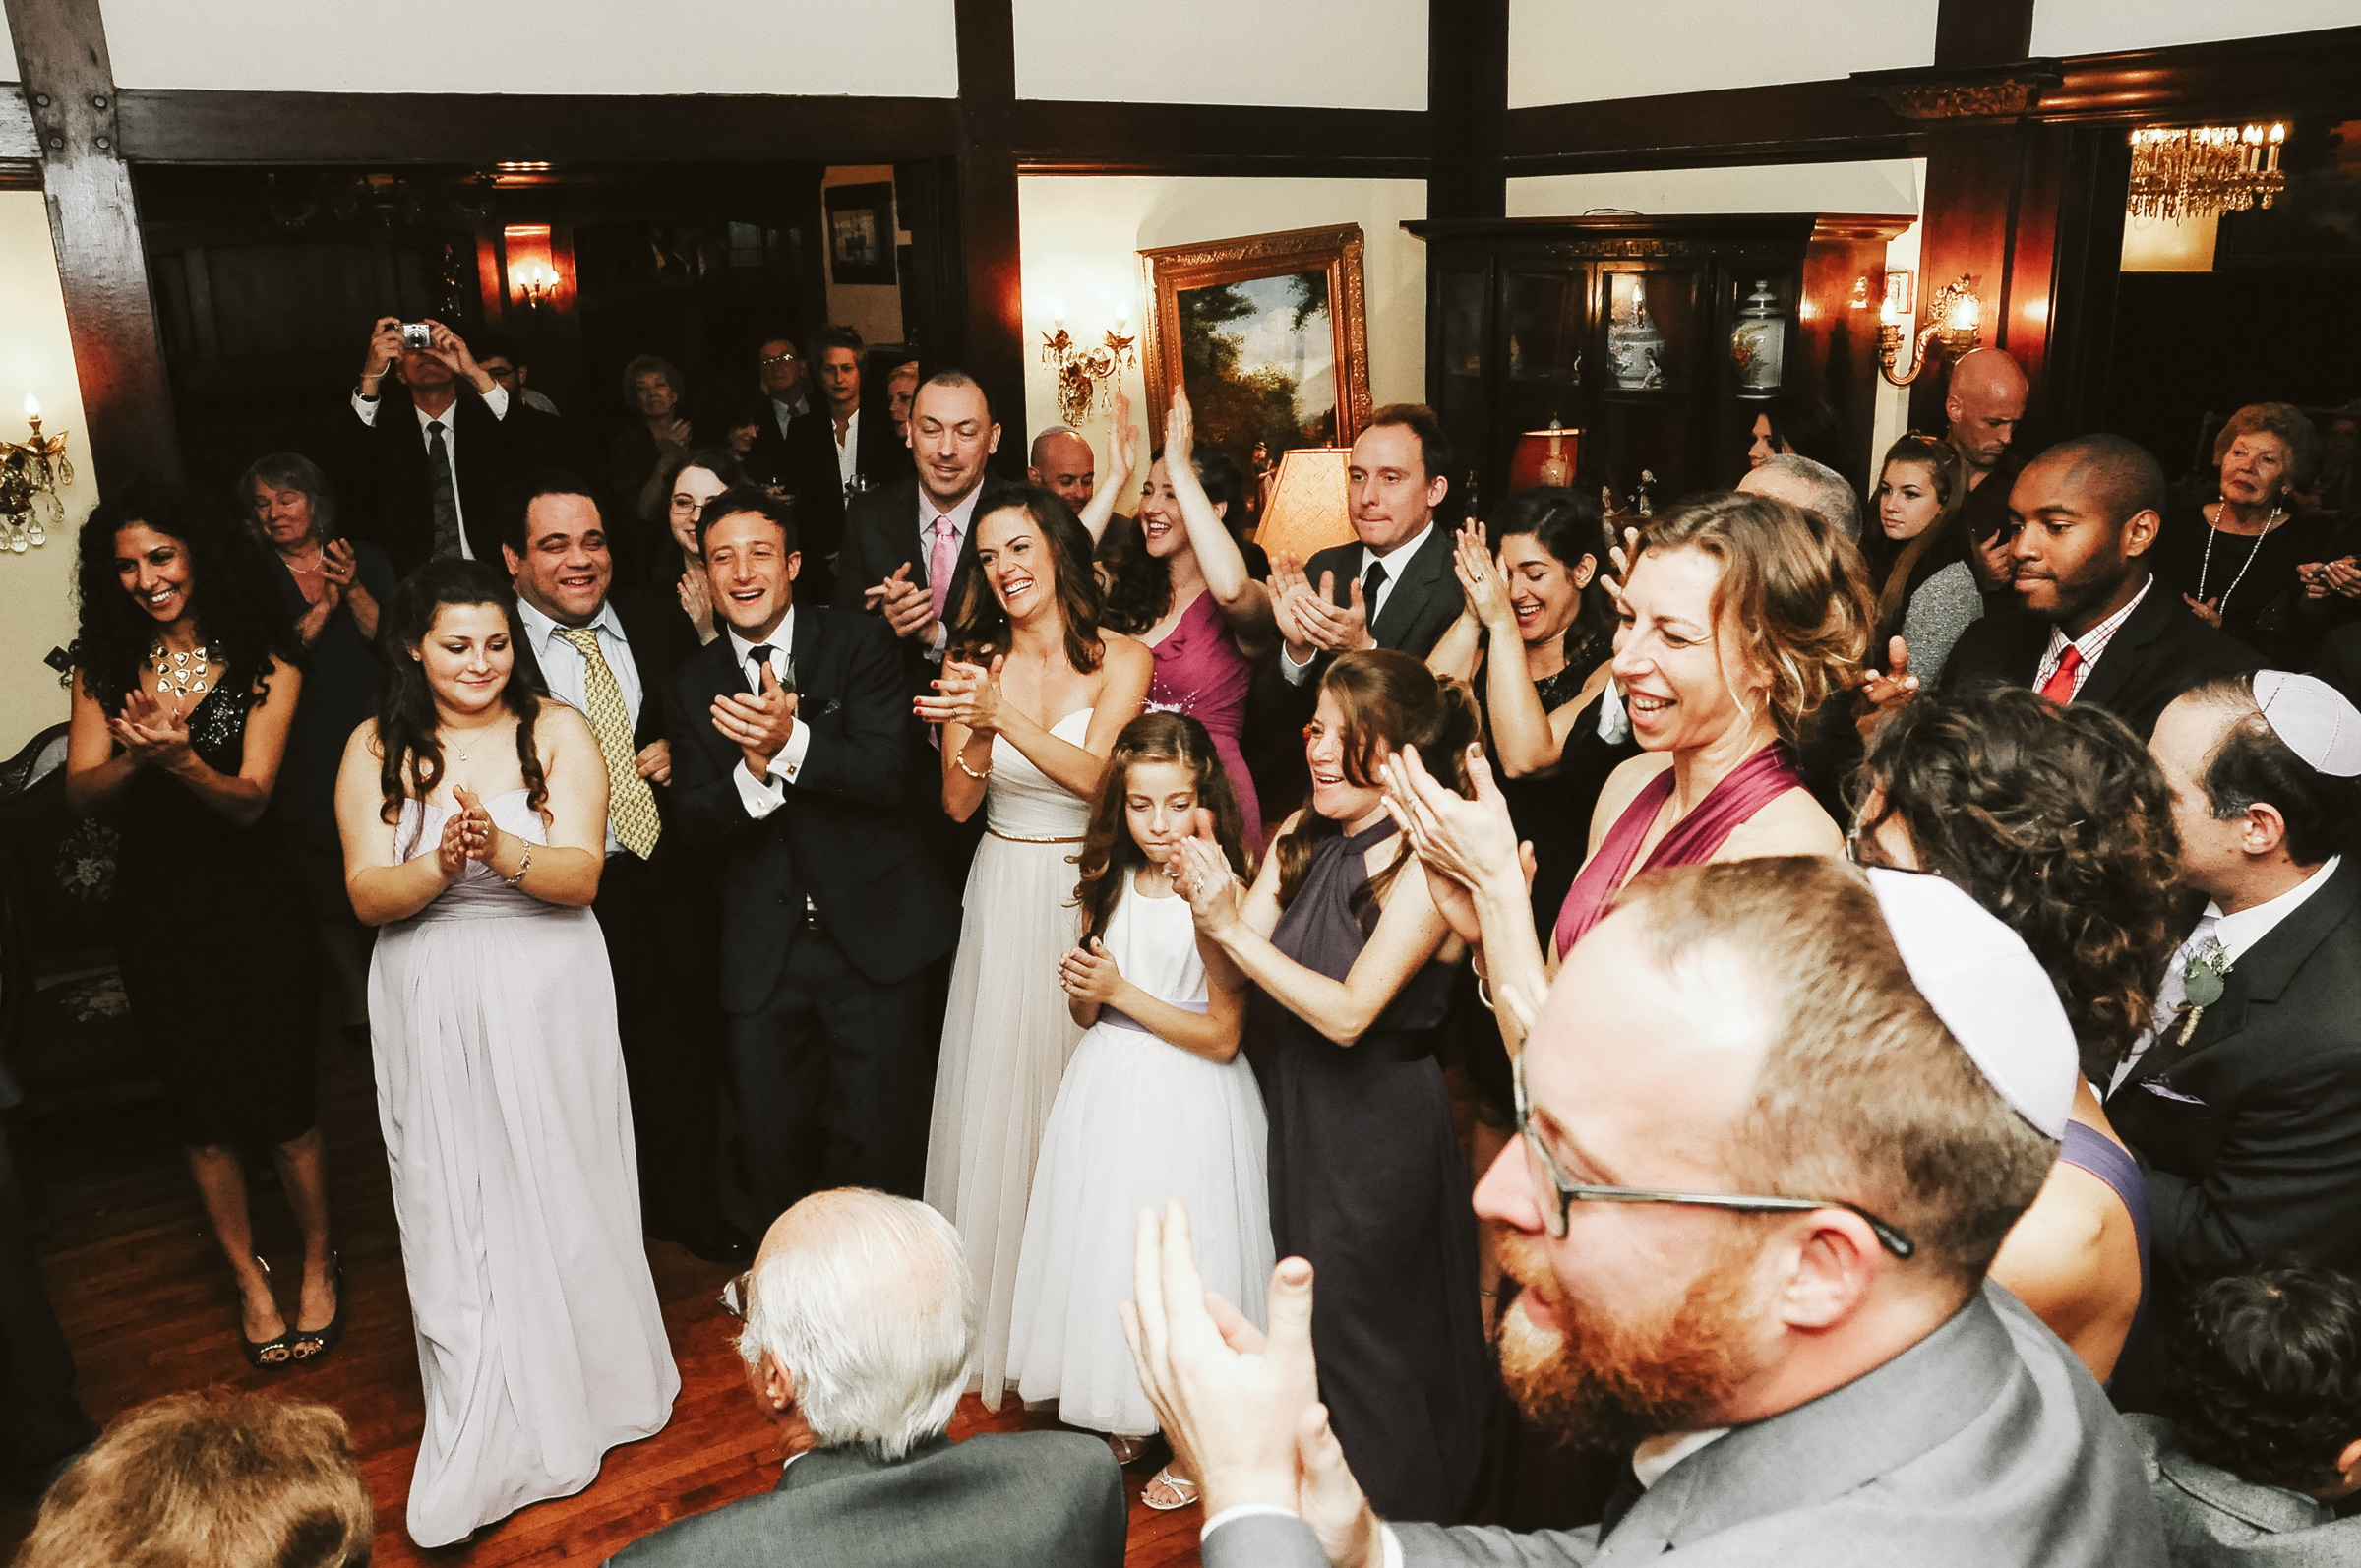 Jen and Drew's Wedding Edited 2019 web-74.jpg